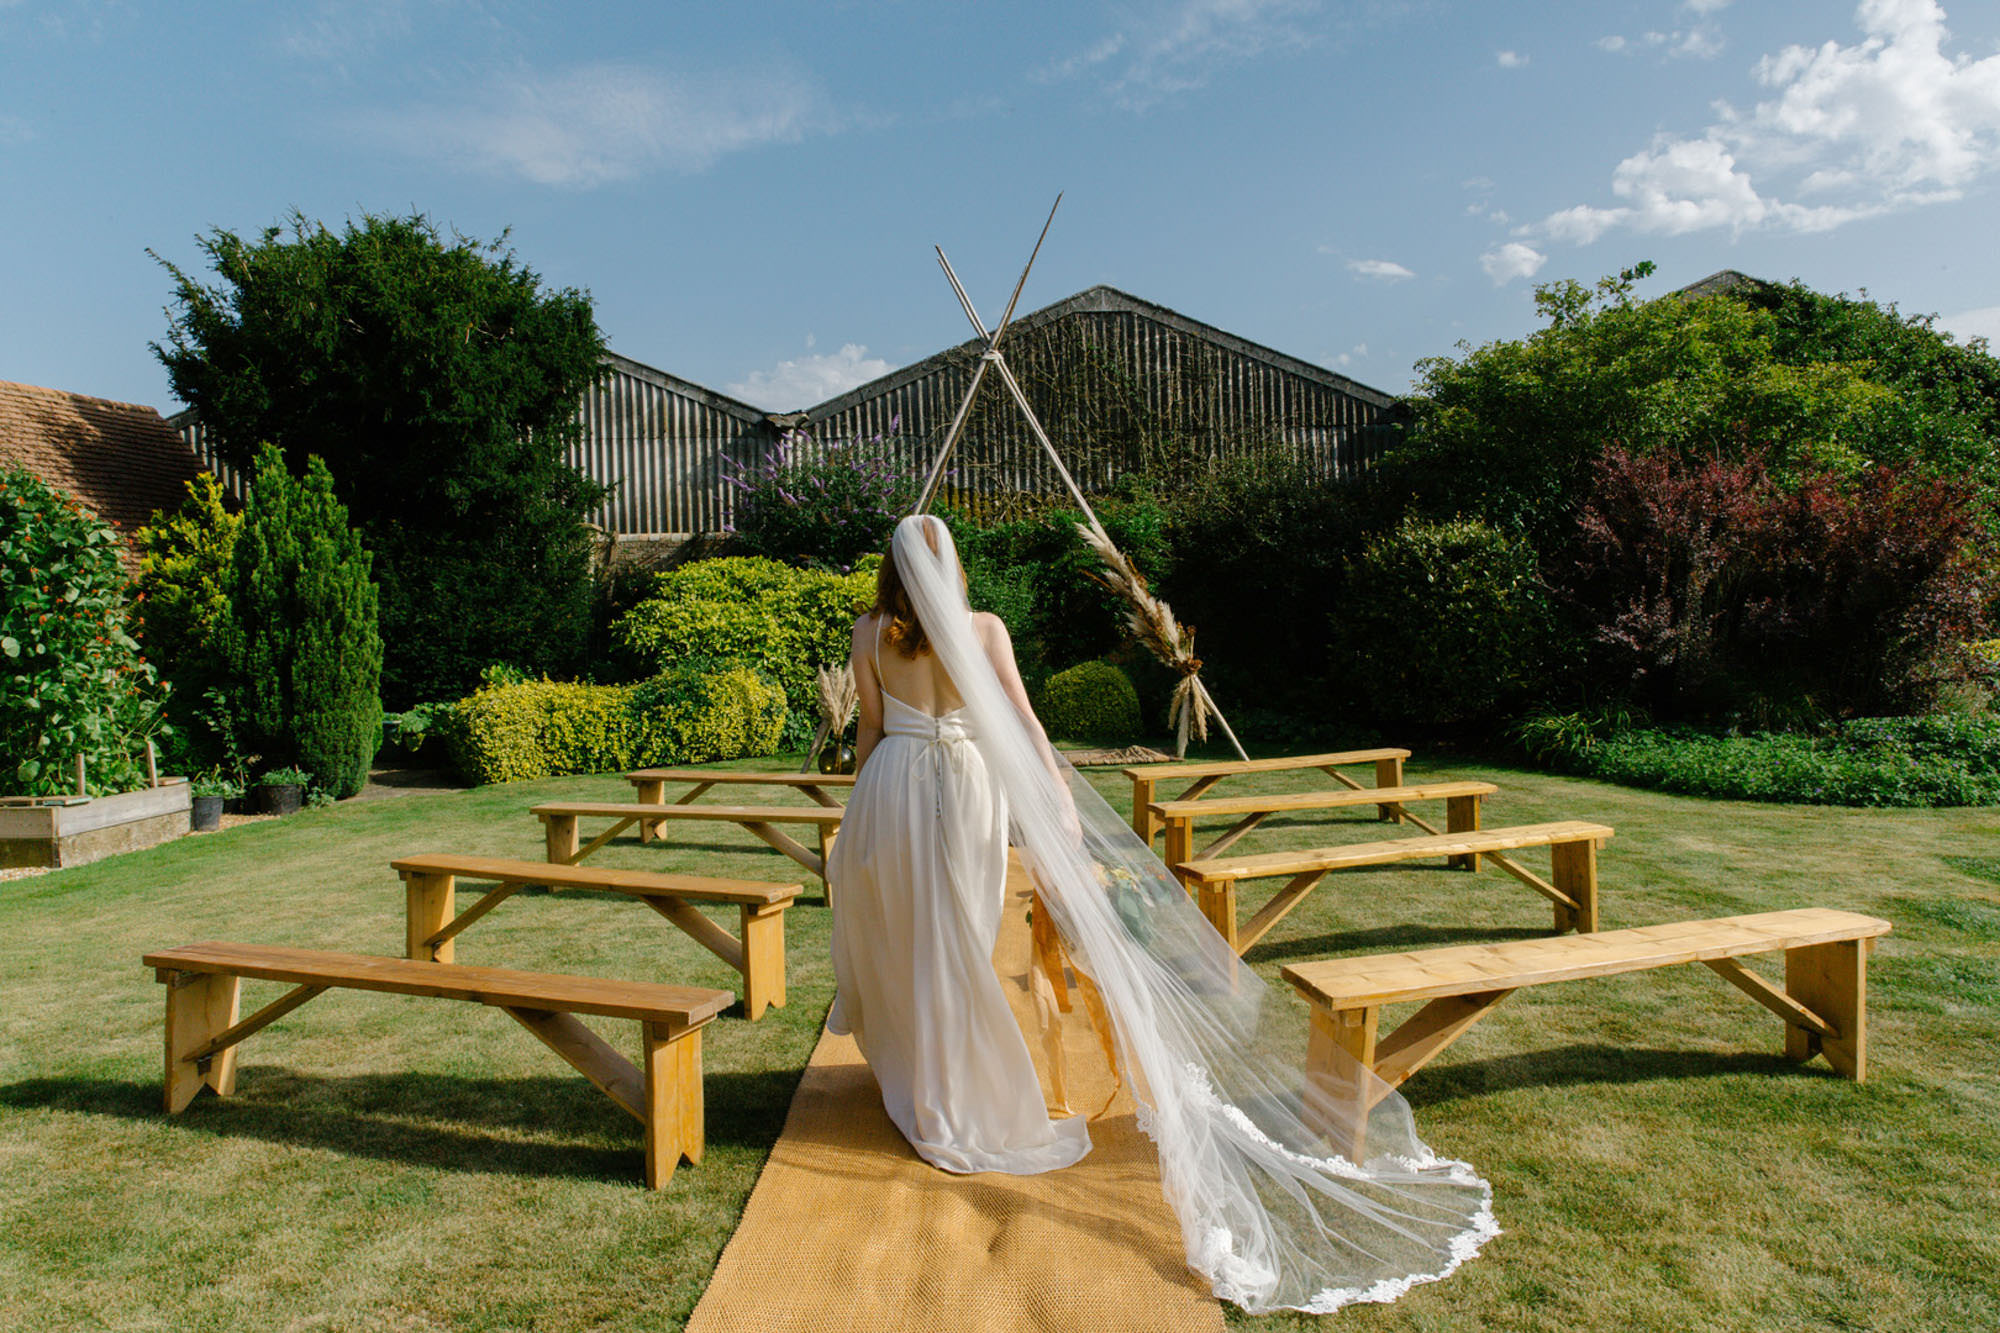 The Gardens at Polehanger - Bedfordshire garden wedding venue